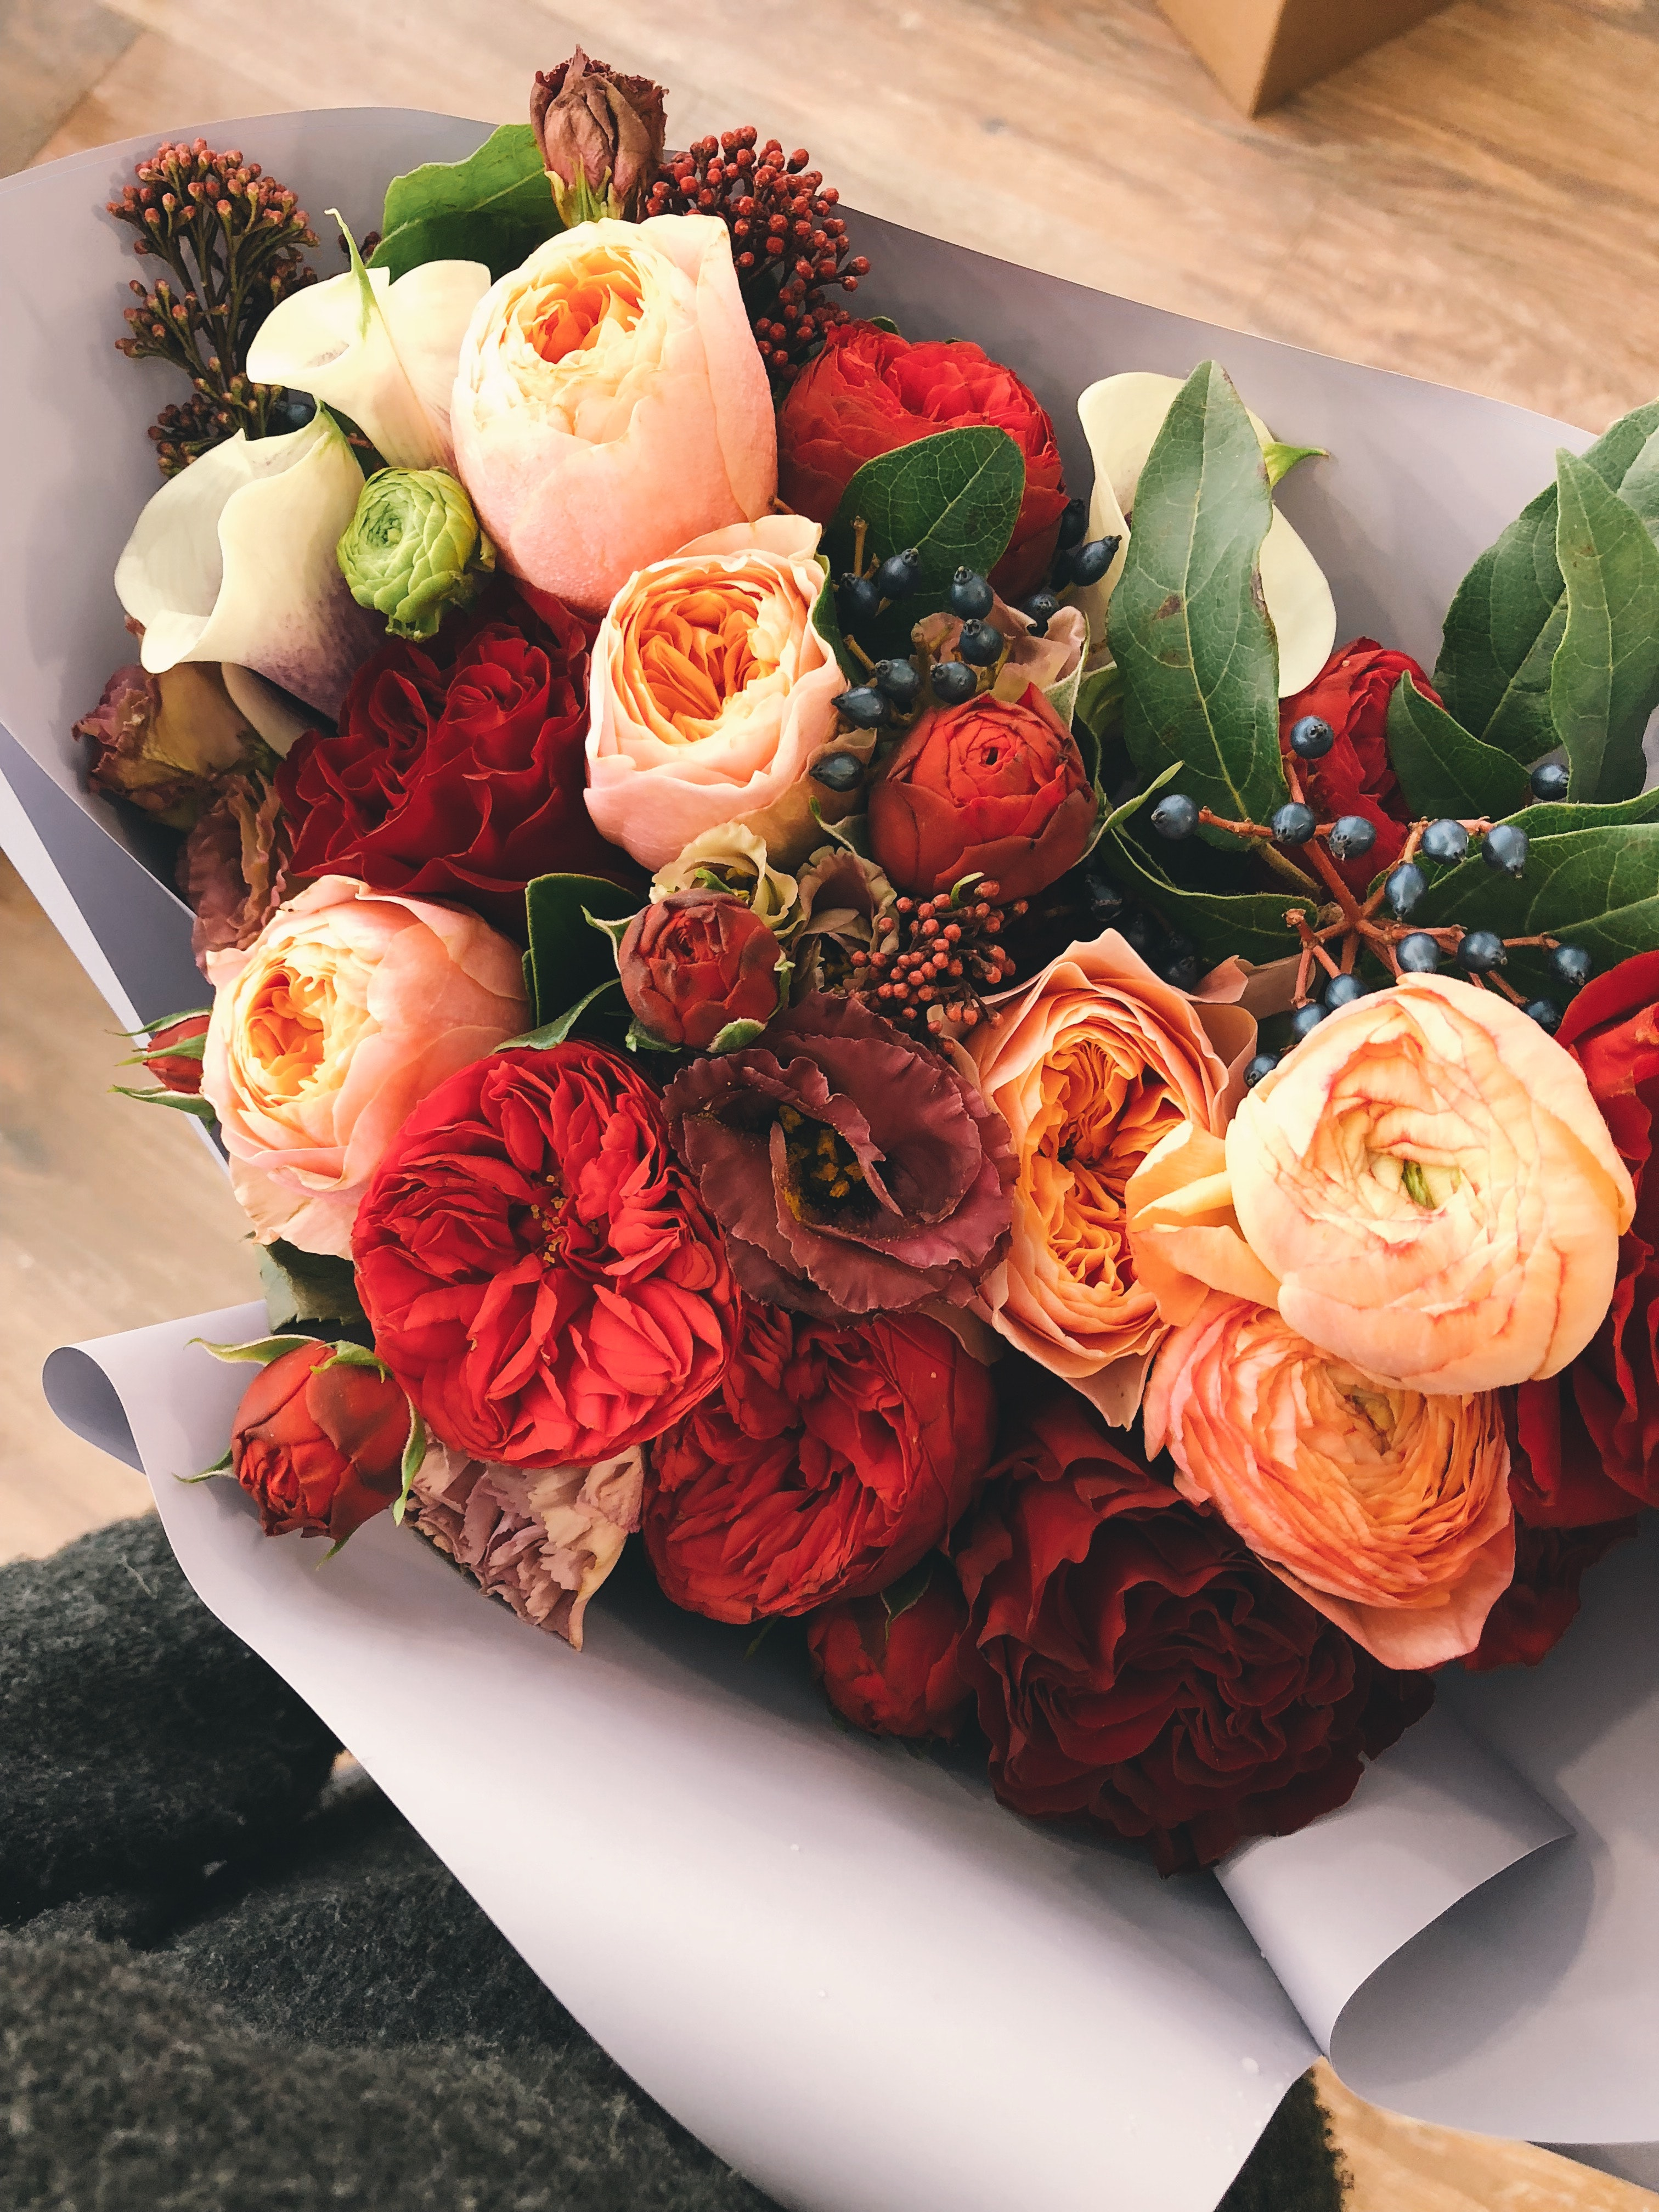 Bouquet of Flowers Covered in Paper, Flowers, Leaves, Petals, Roses, HQ Photo